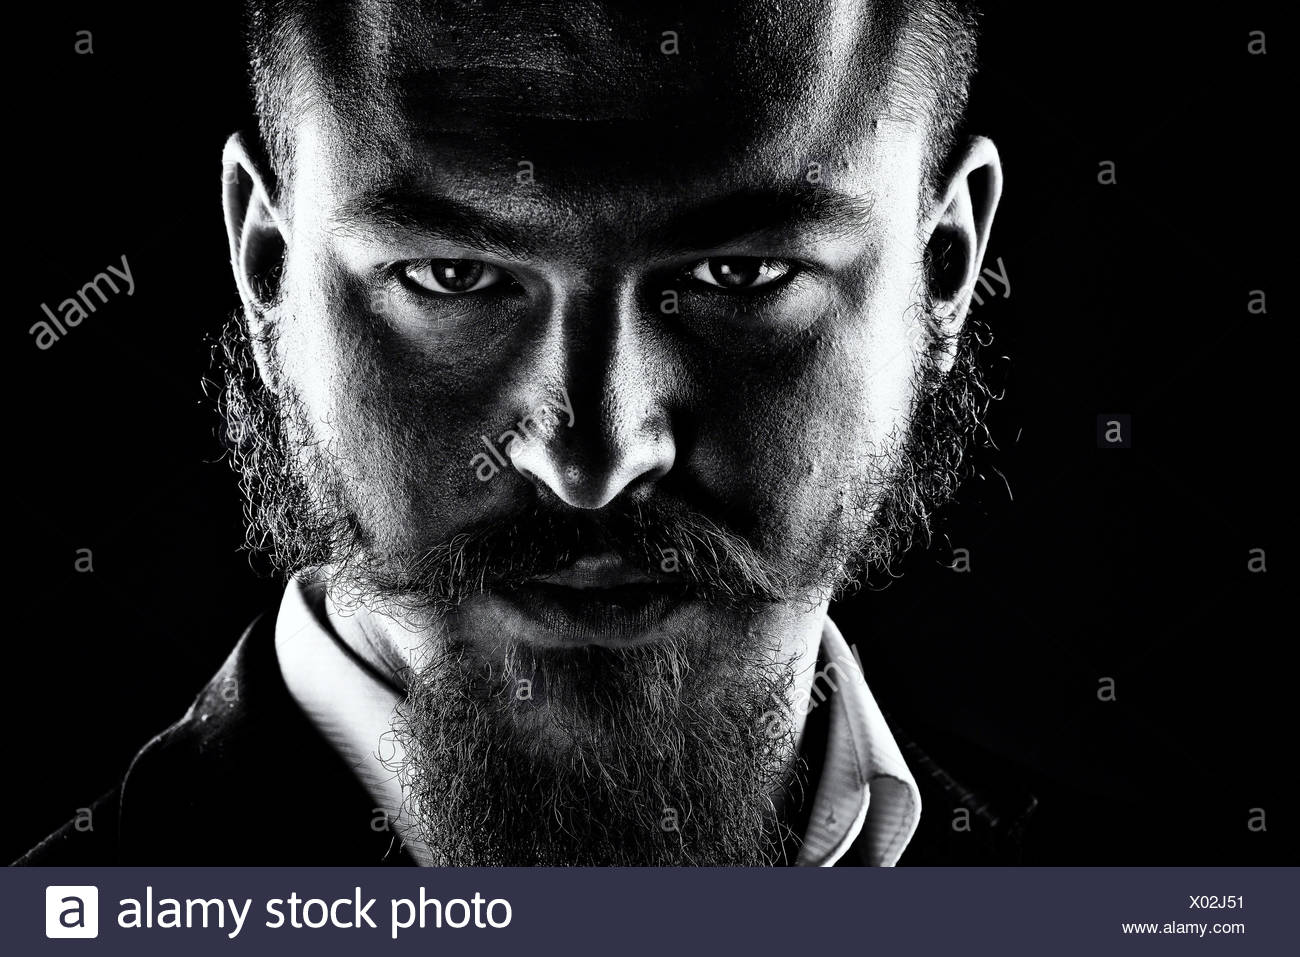 look into my eyes - Stock Image